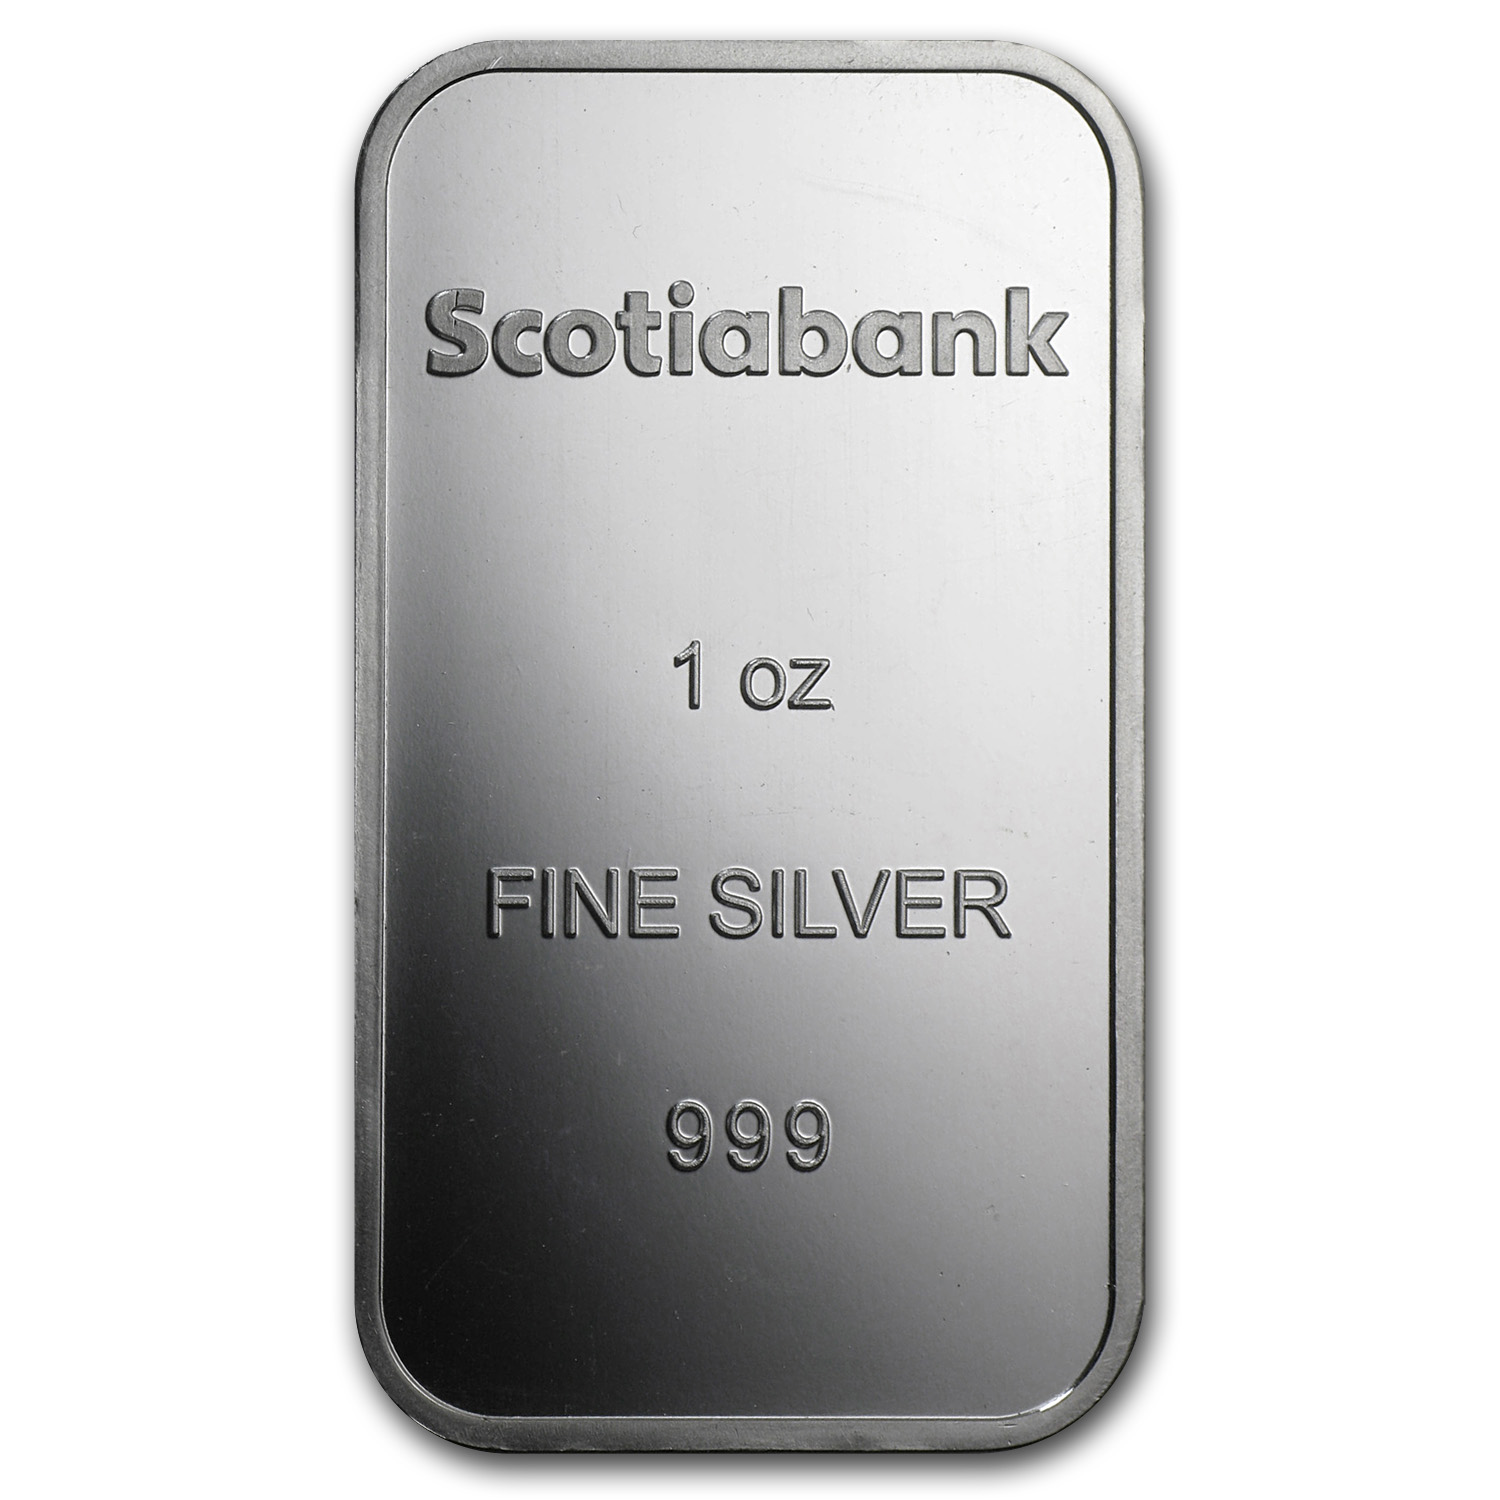 1 oz Silver Bars - Scotiabank